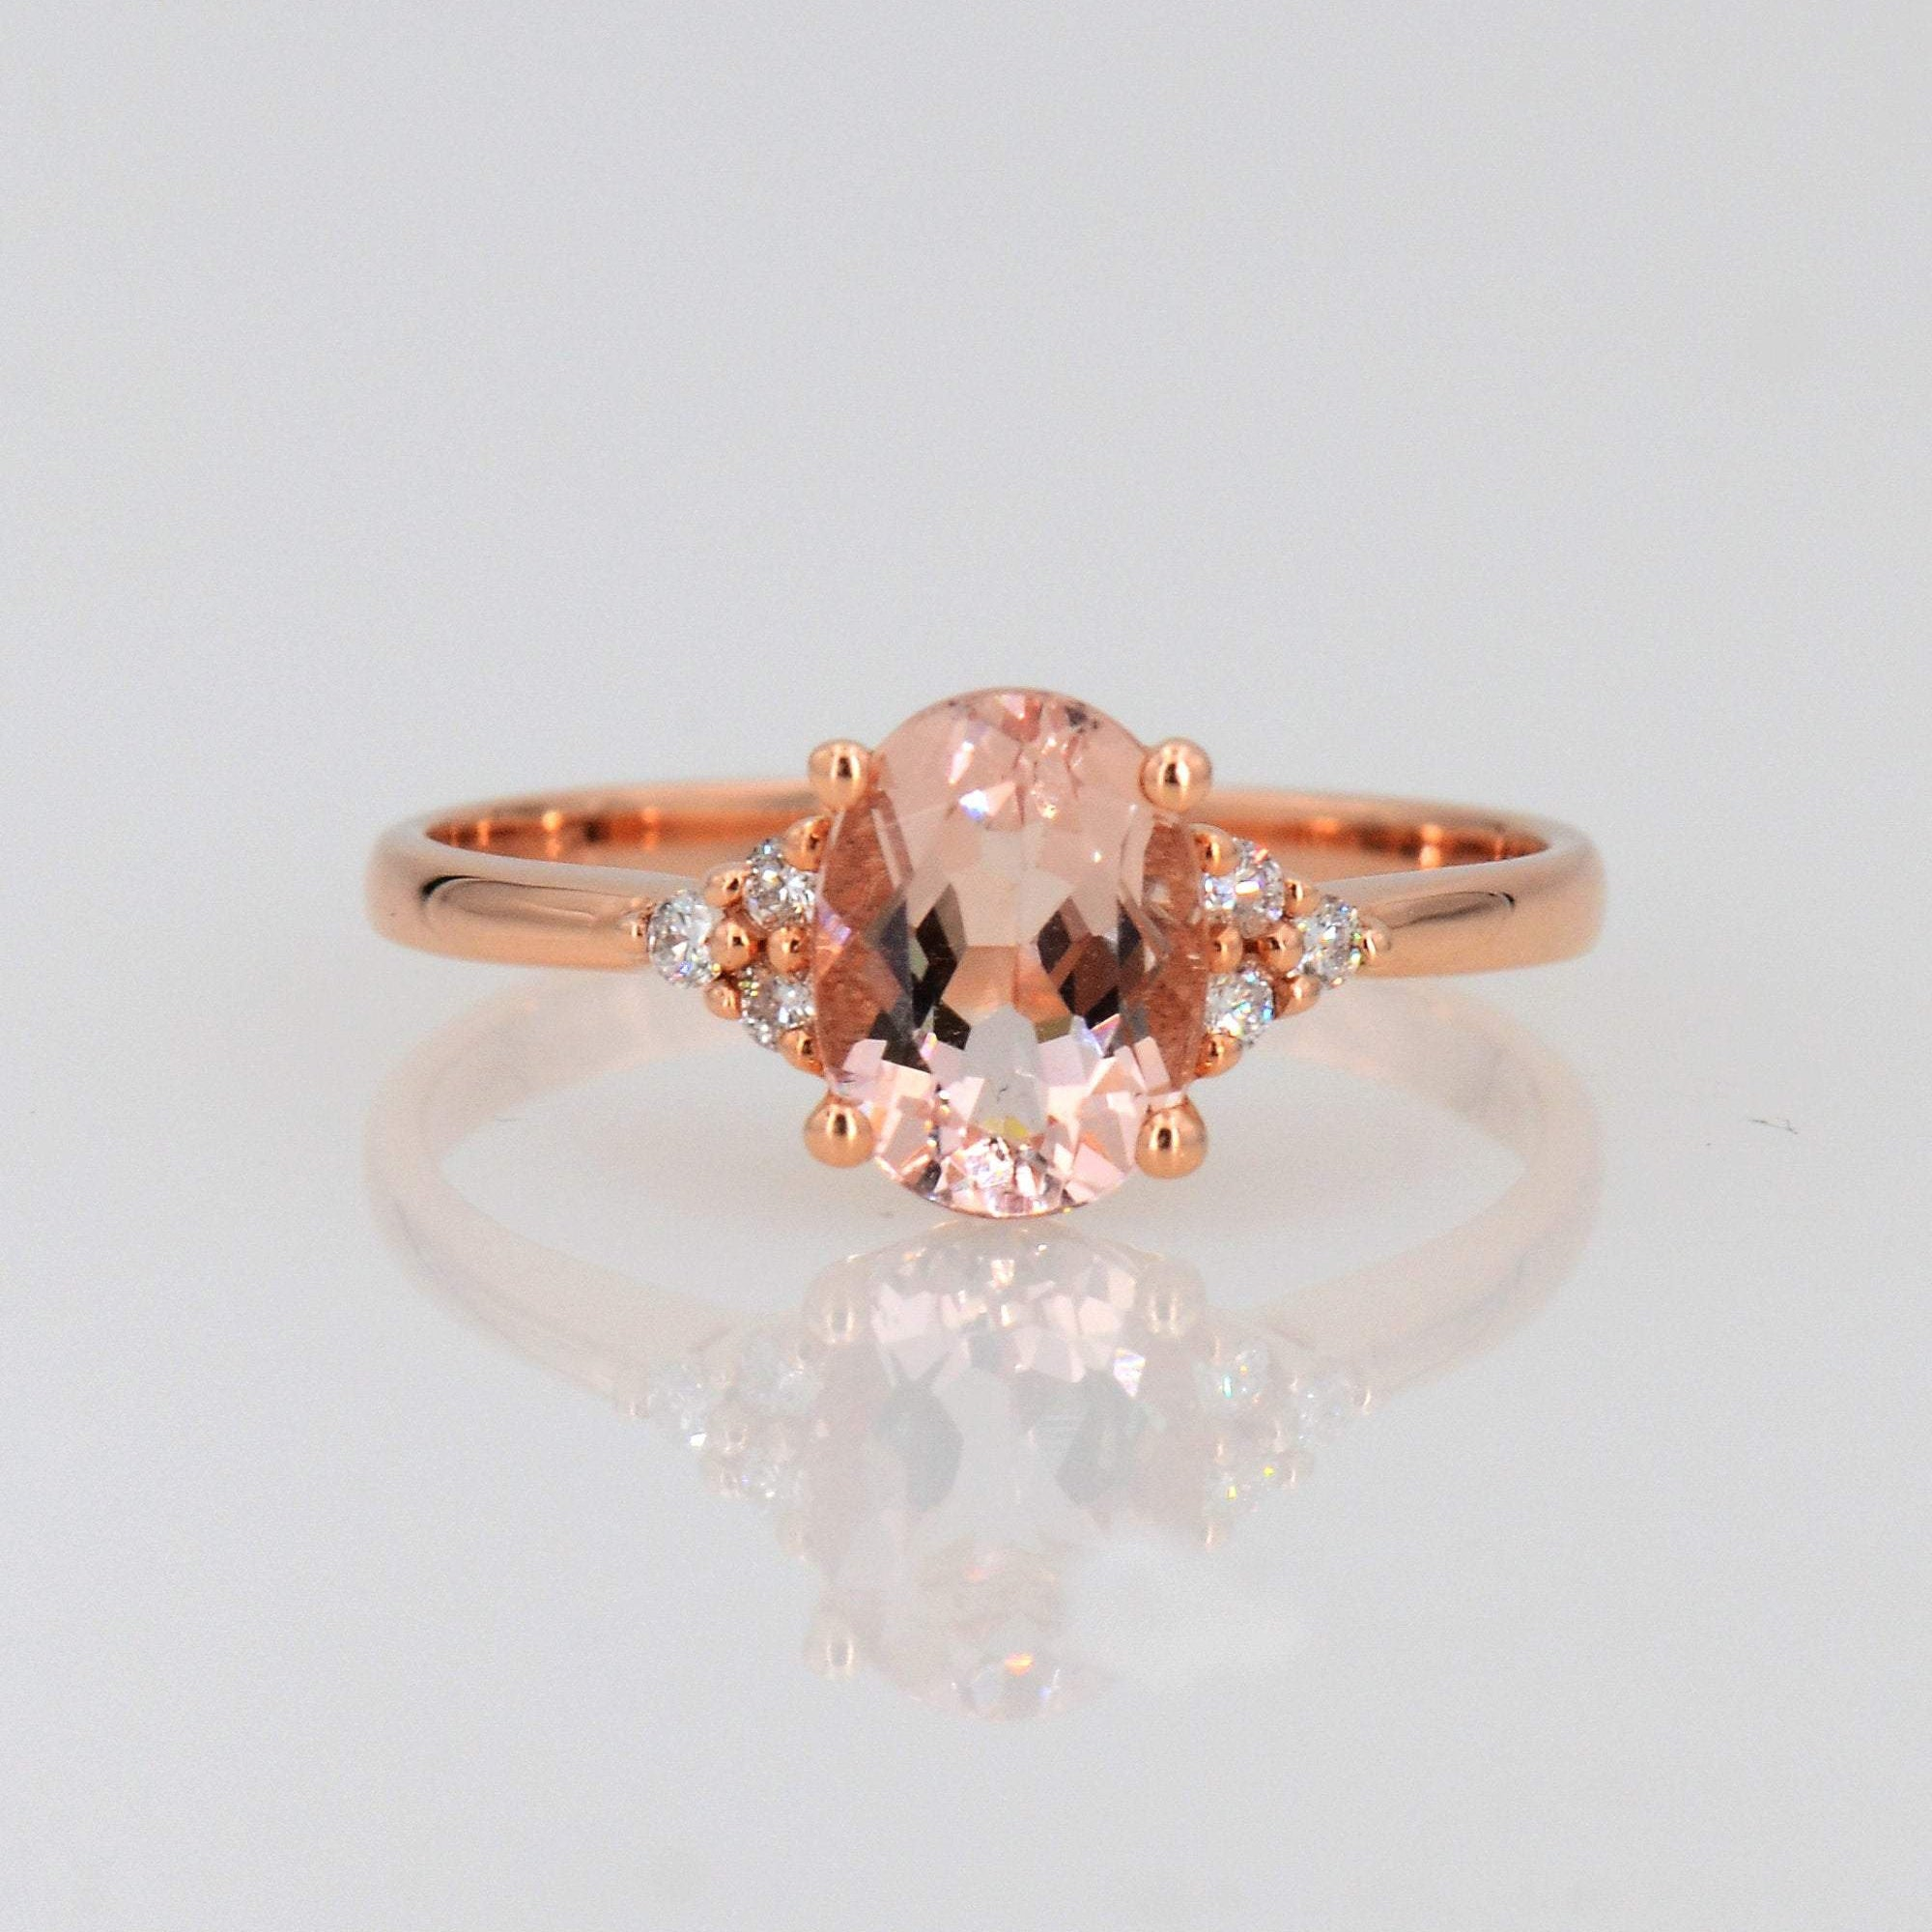 14k Rose Gold Bridal Ring, Morganite Solitaire Ring